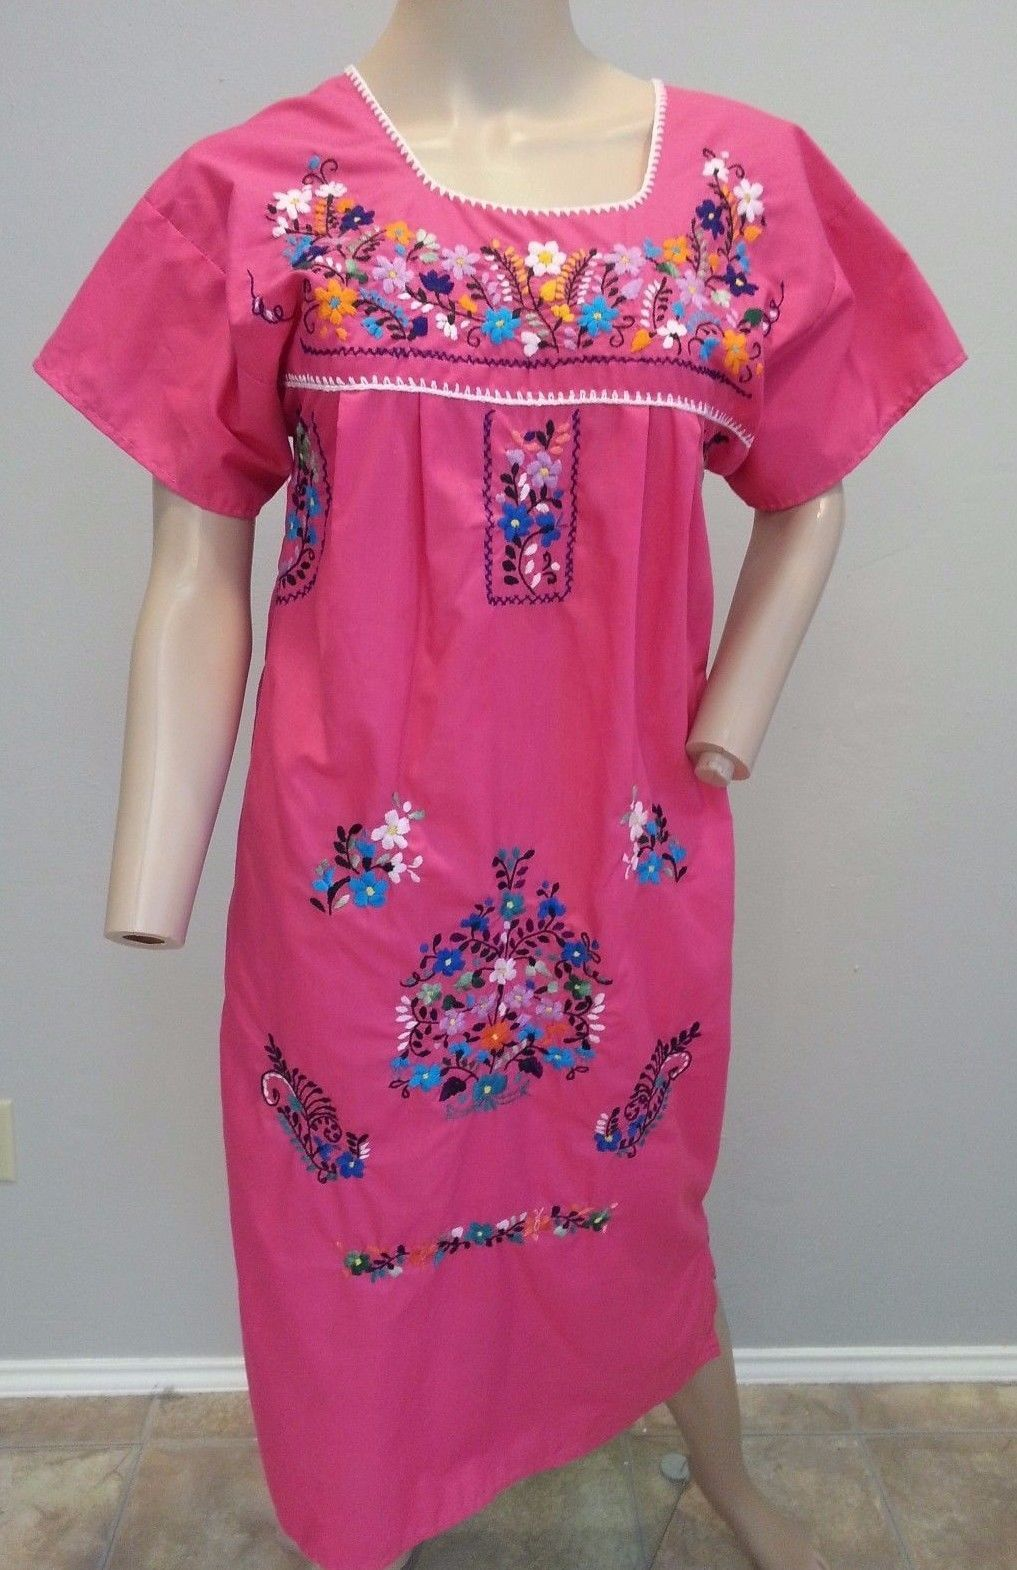 VTG Pink Embroidered Multicolor Floral Mexican Oaxacan MuuMuu Dress